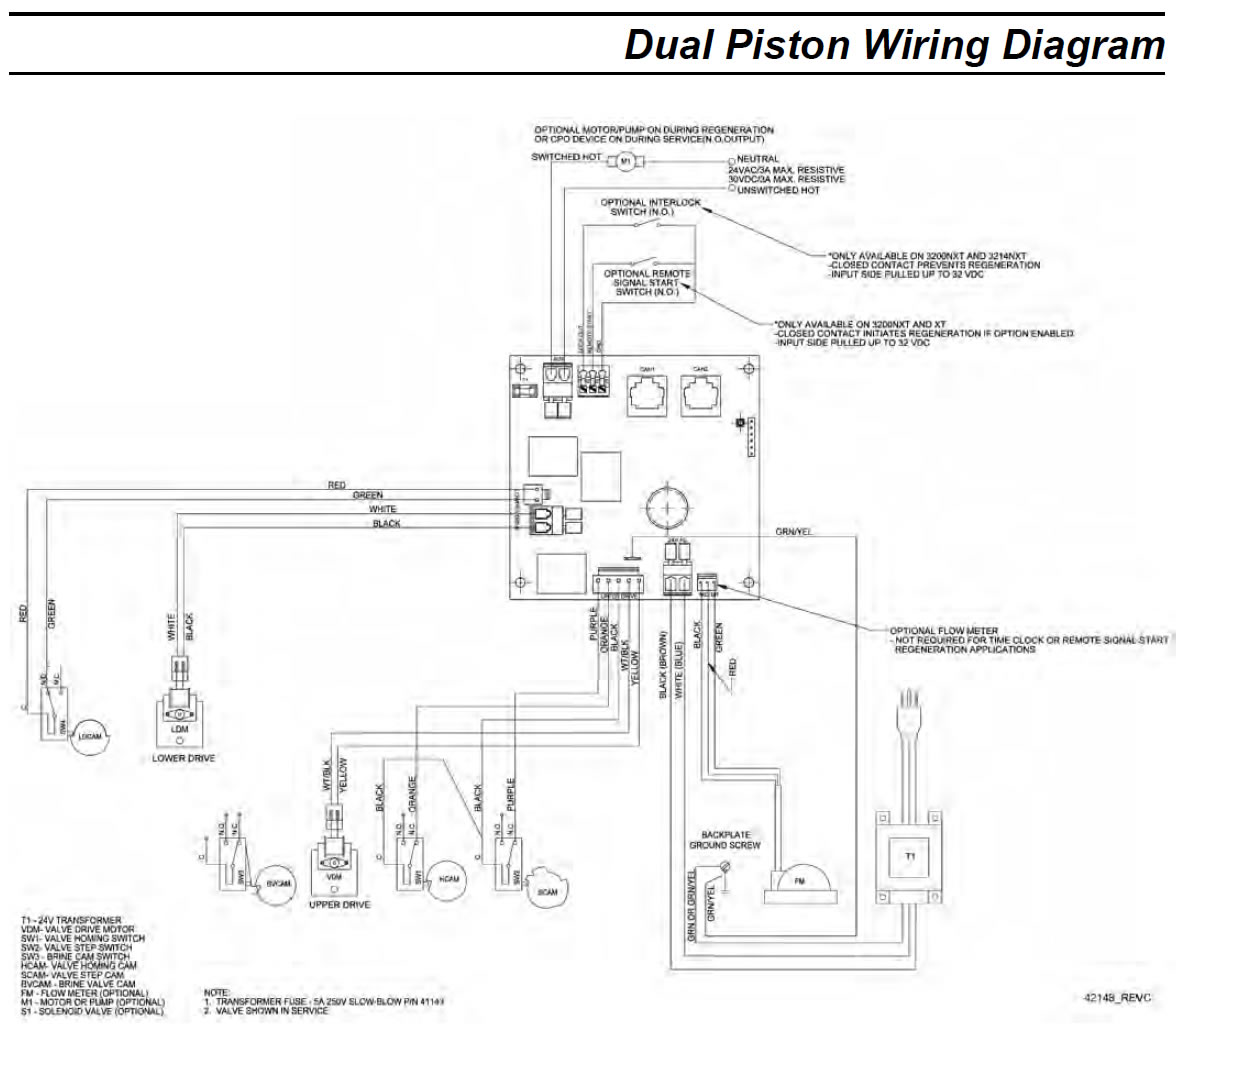 hight resolution of water tank float switches wiring diagram get free image overhead valve engine diagram valve train parts